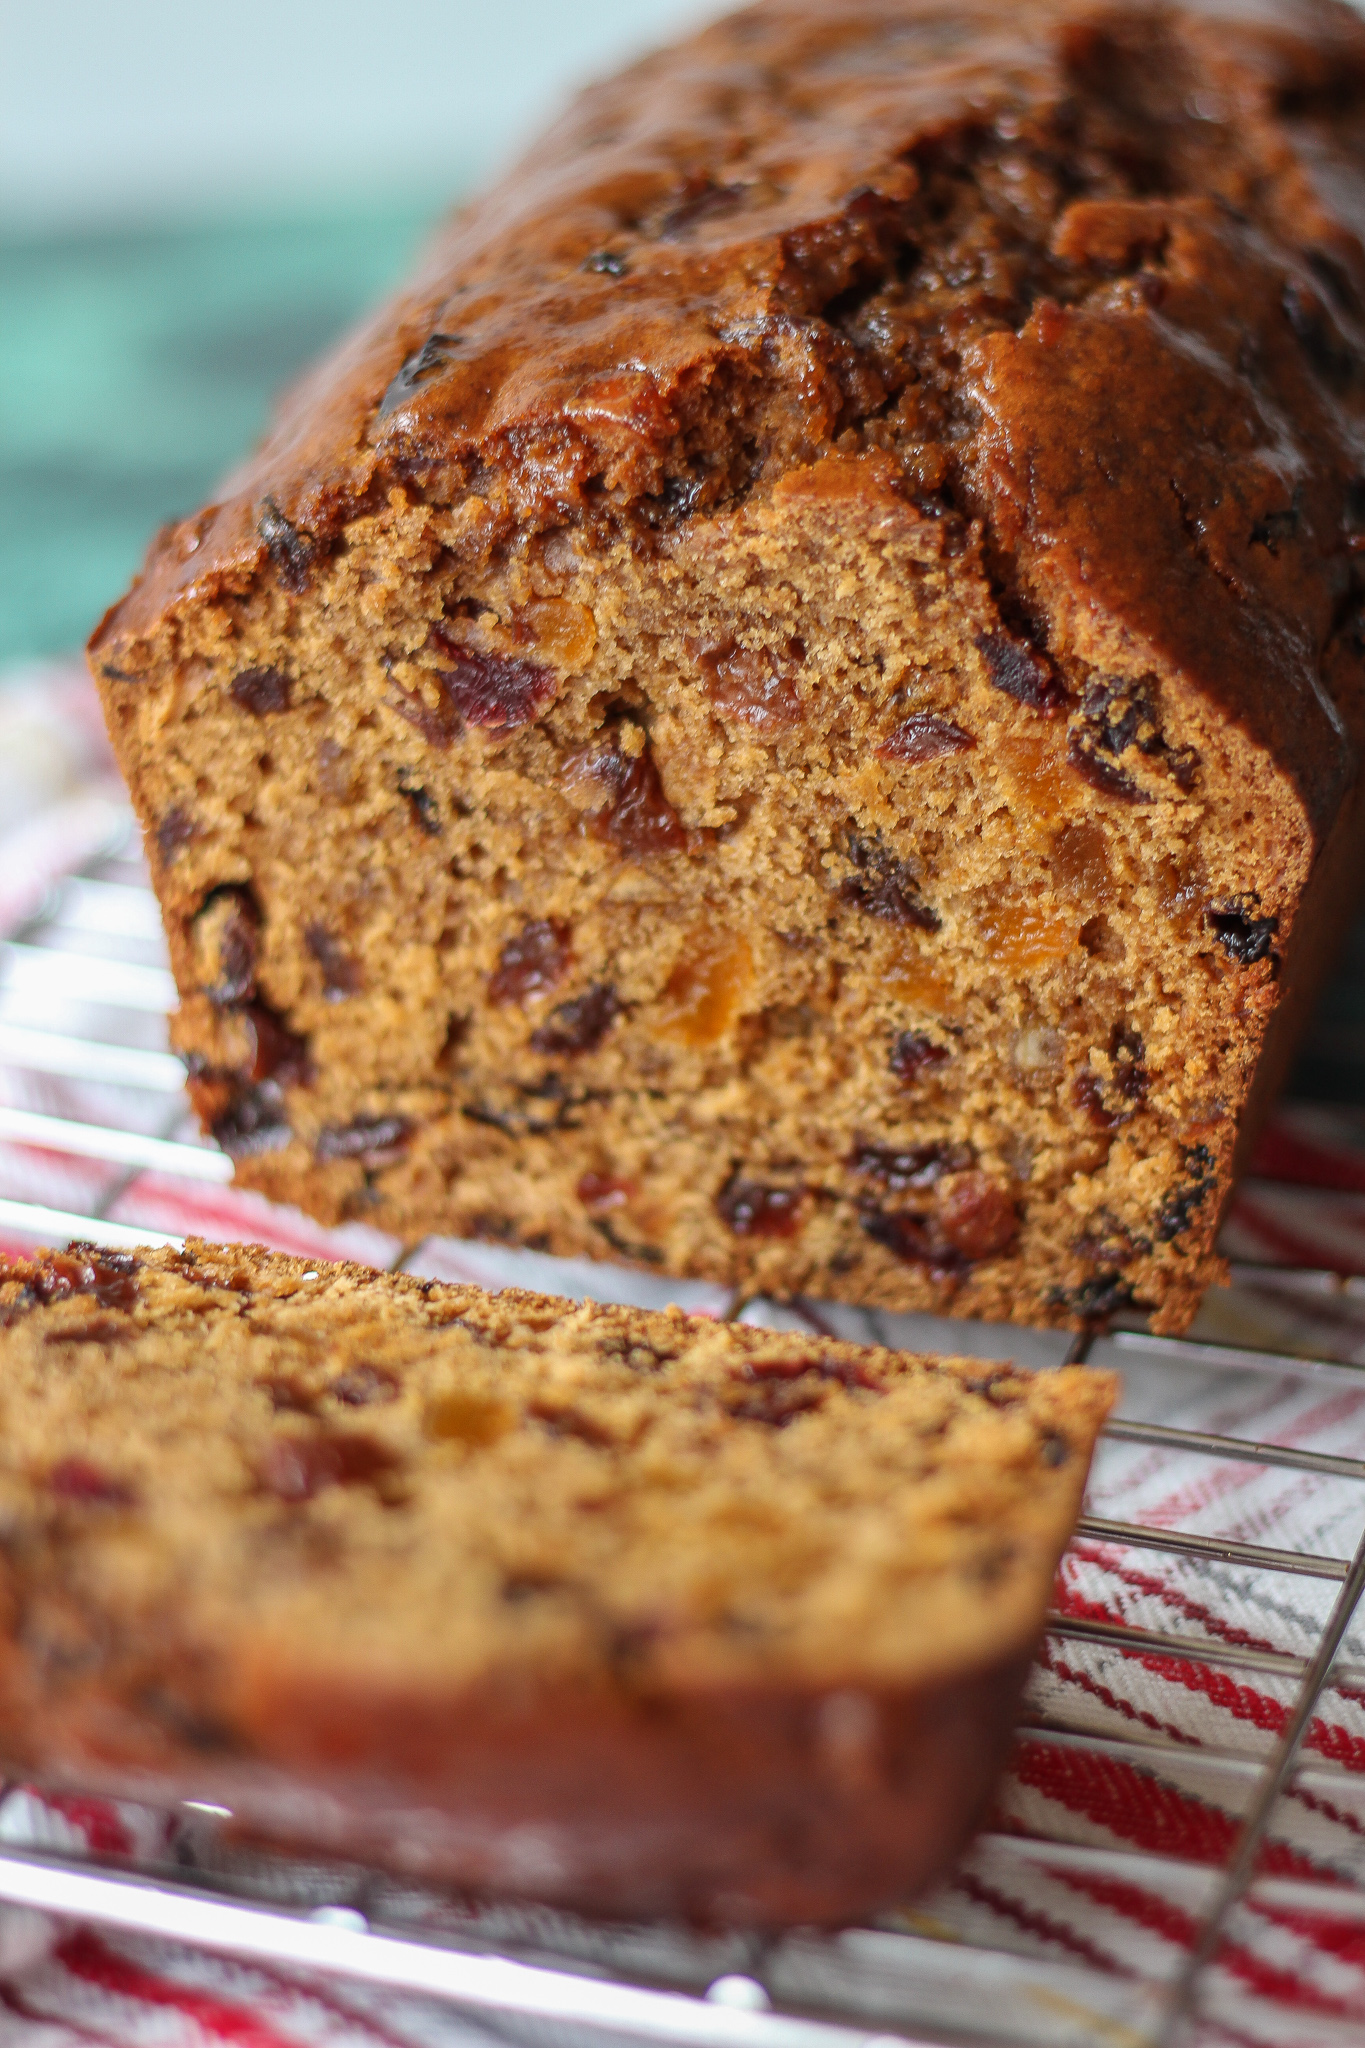 close up inside Bara Brith on wire rack, with slice in front